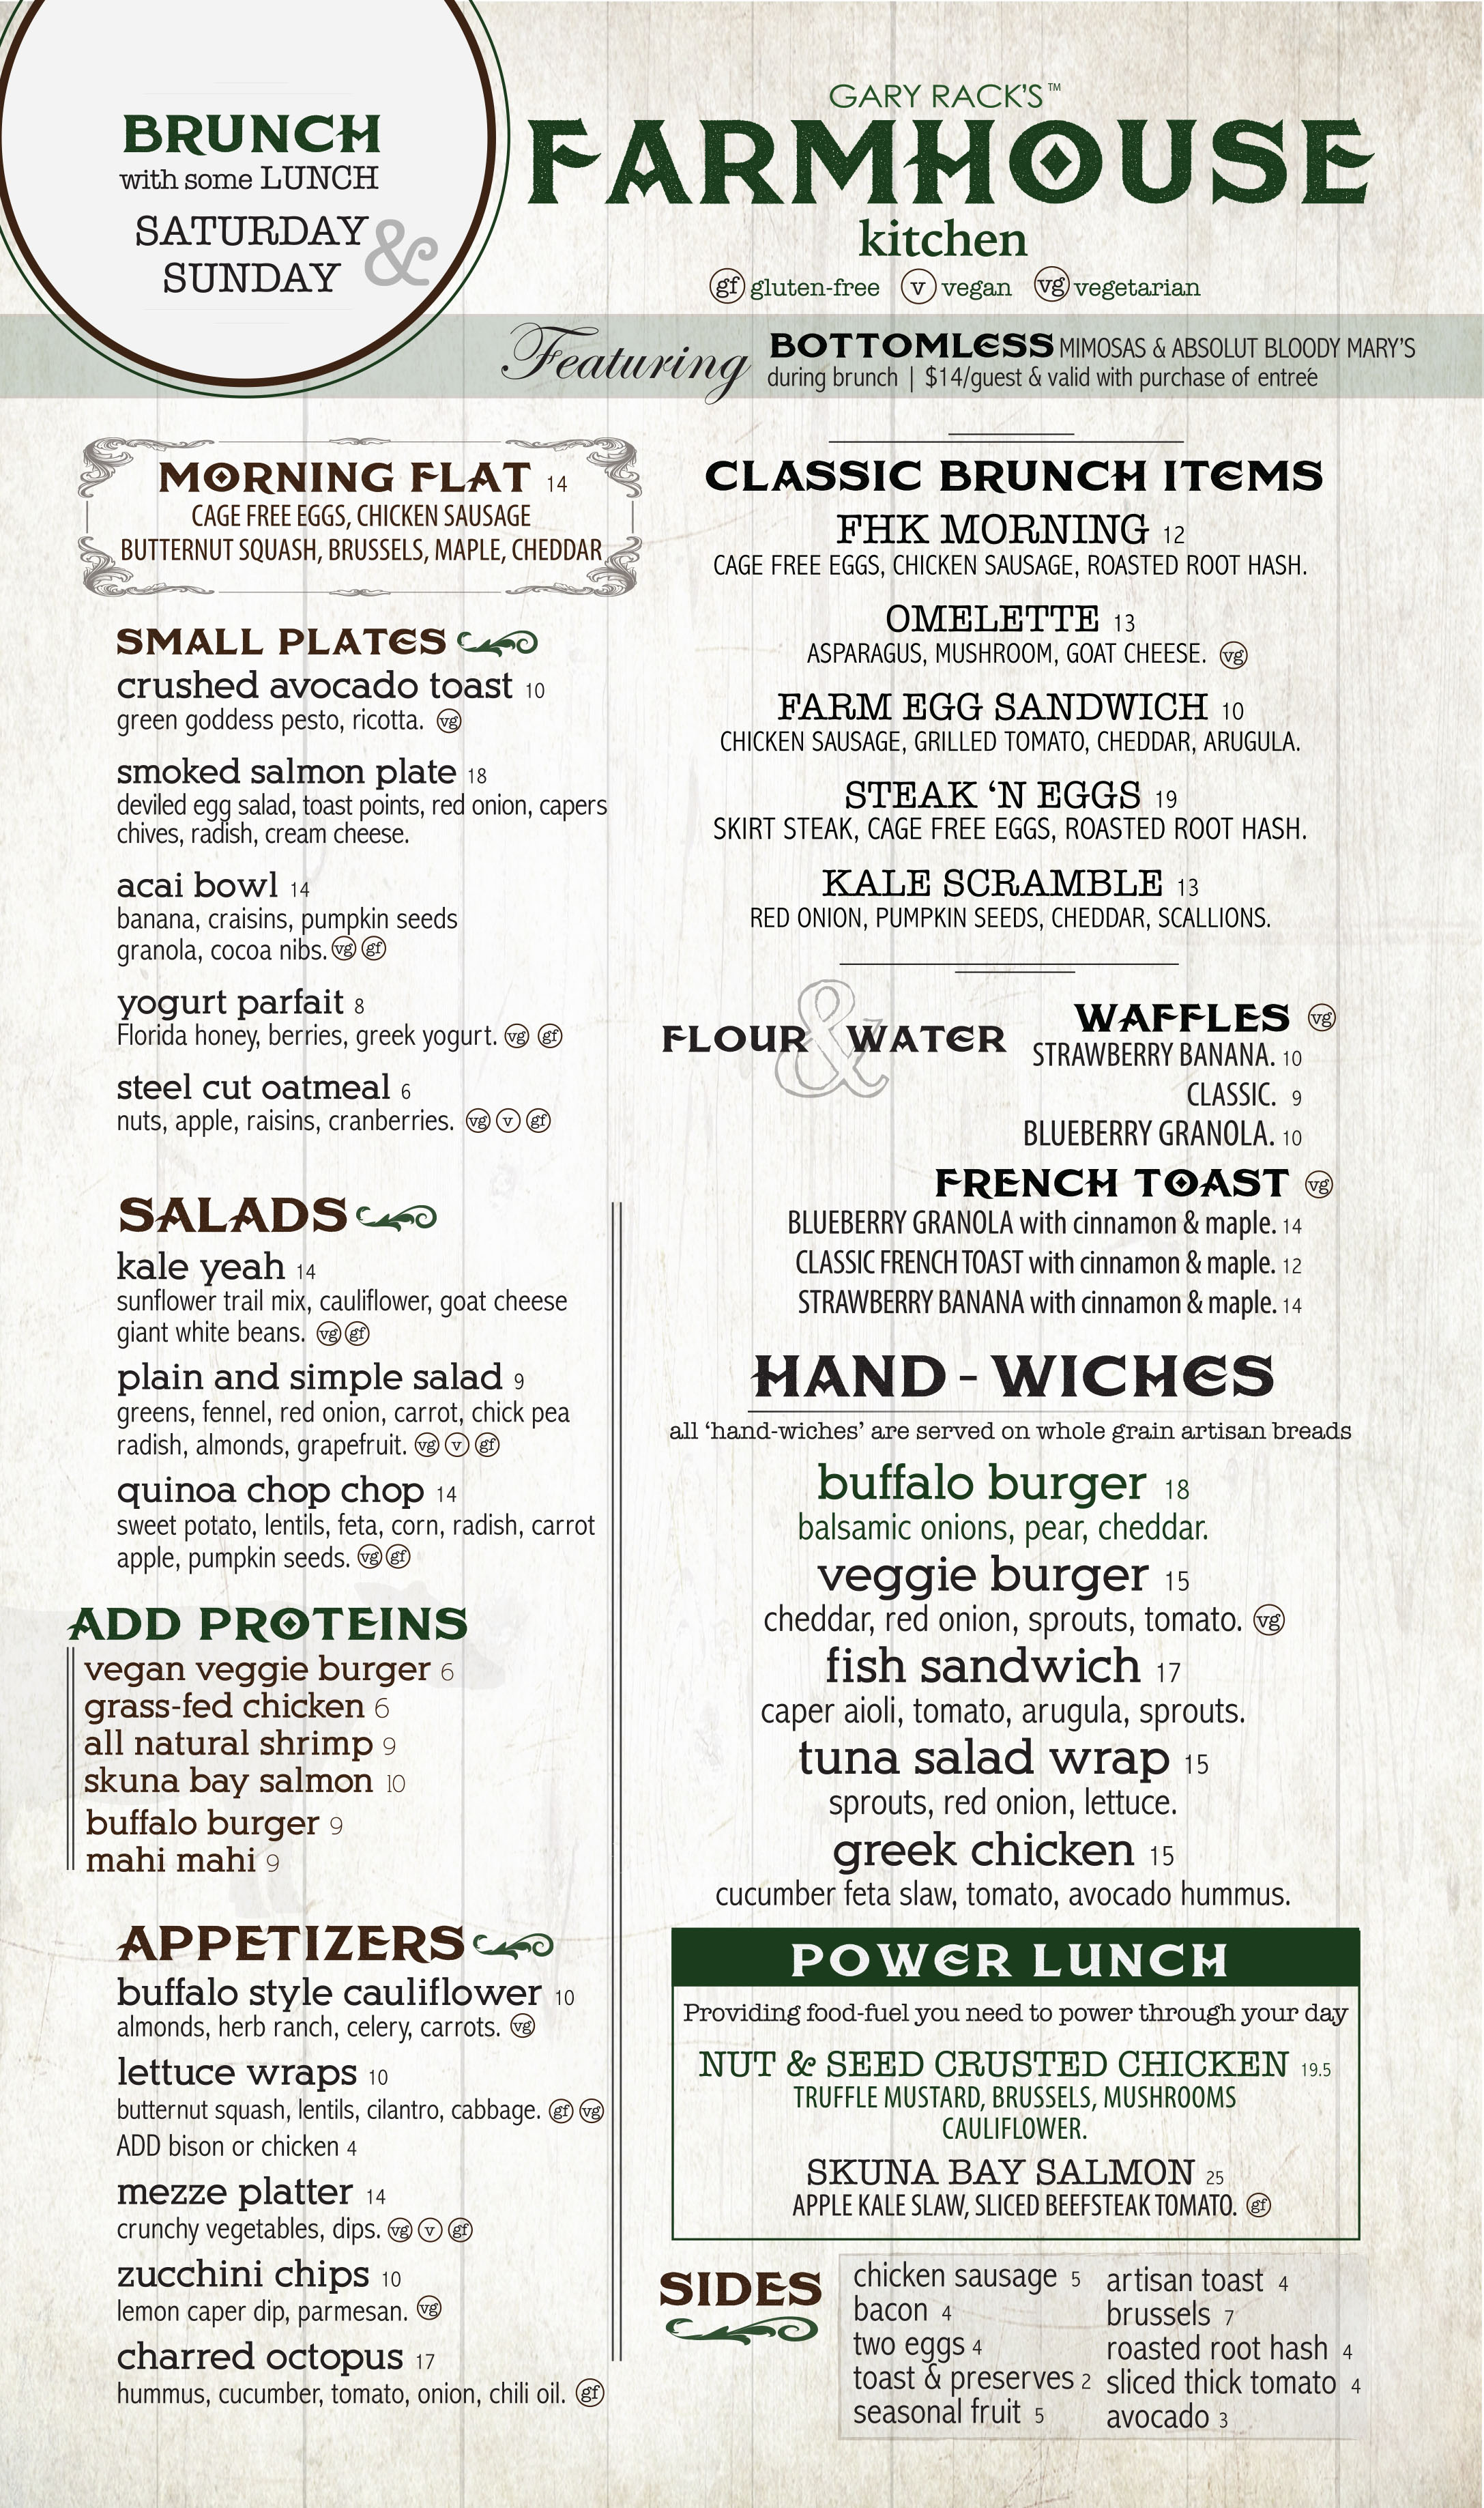 Farmhouse Kitchen Boca Brunch Menu 2016